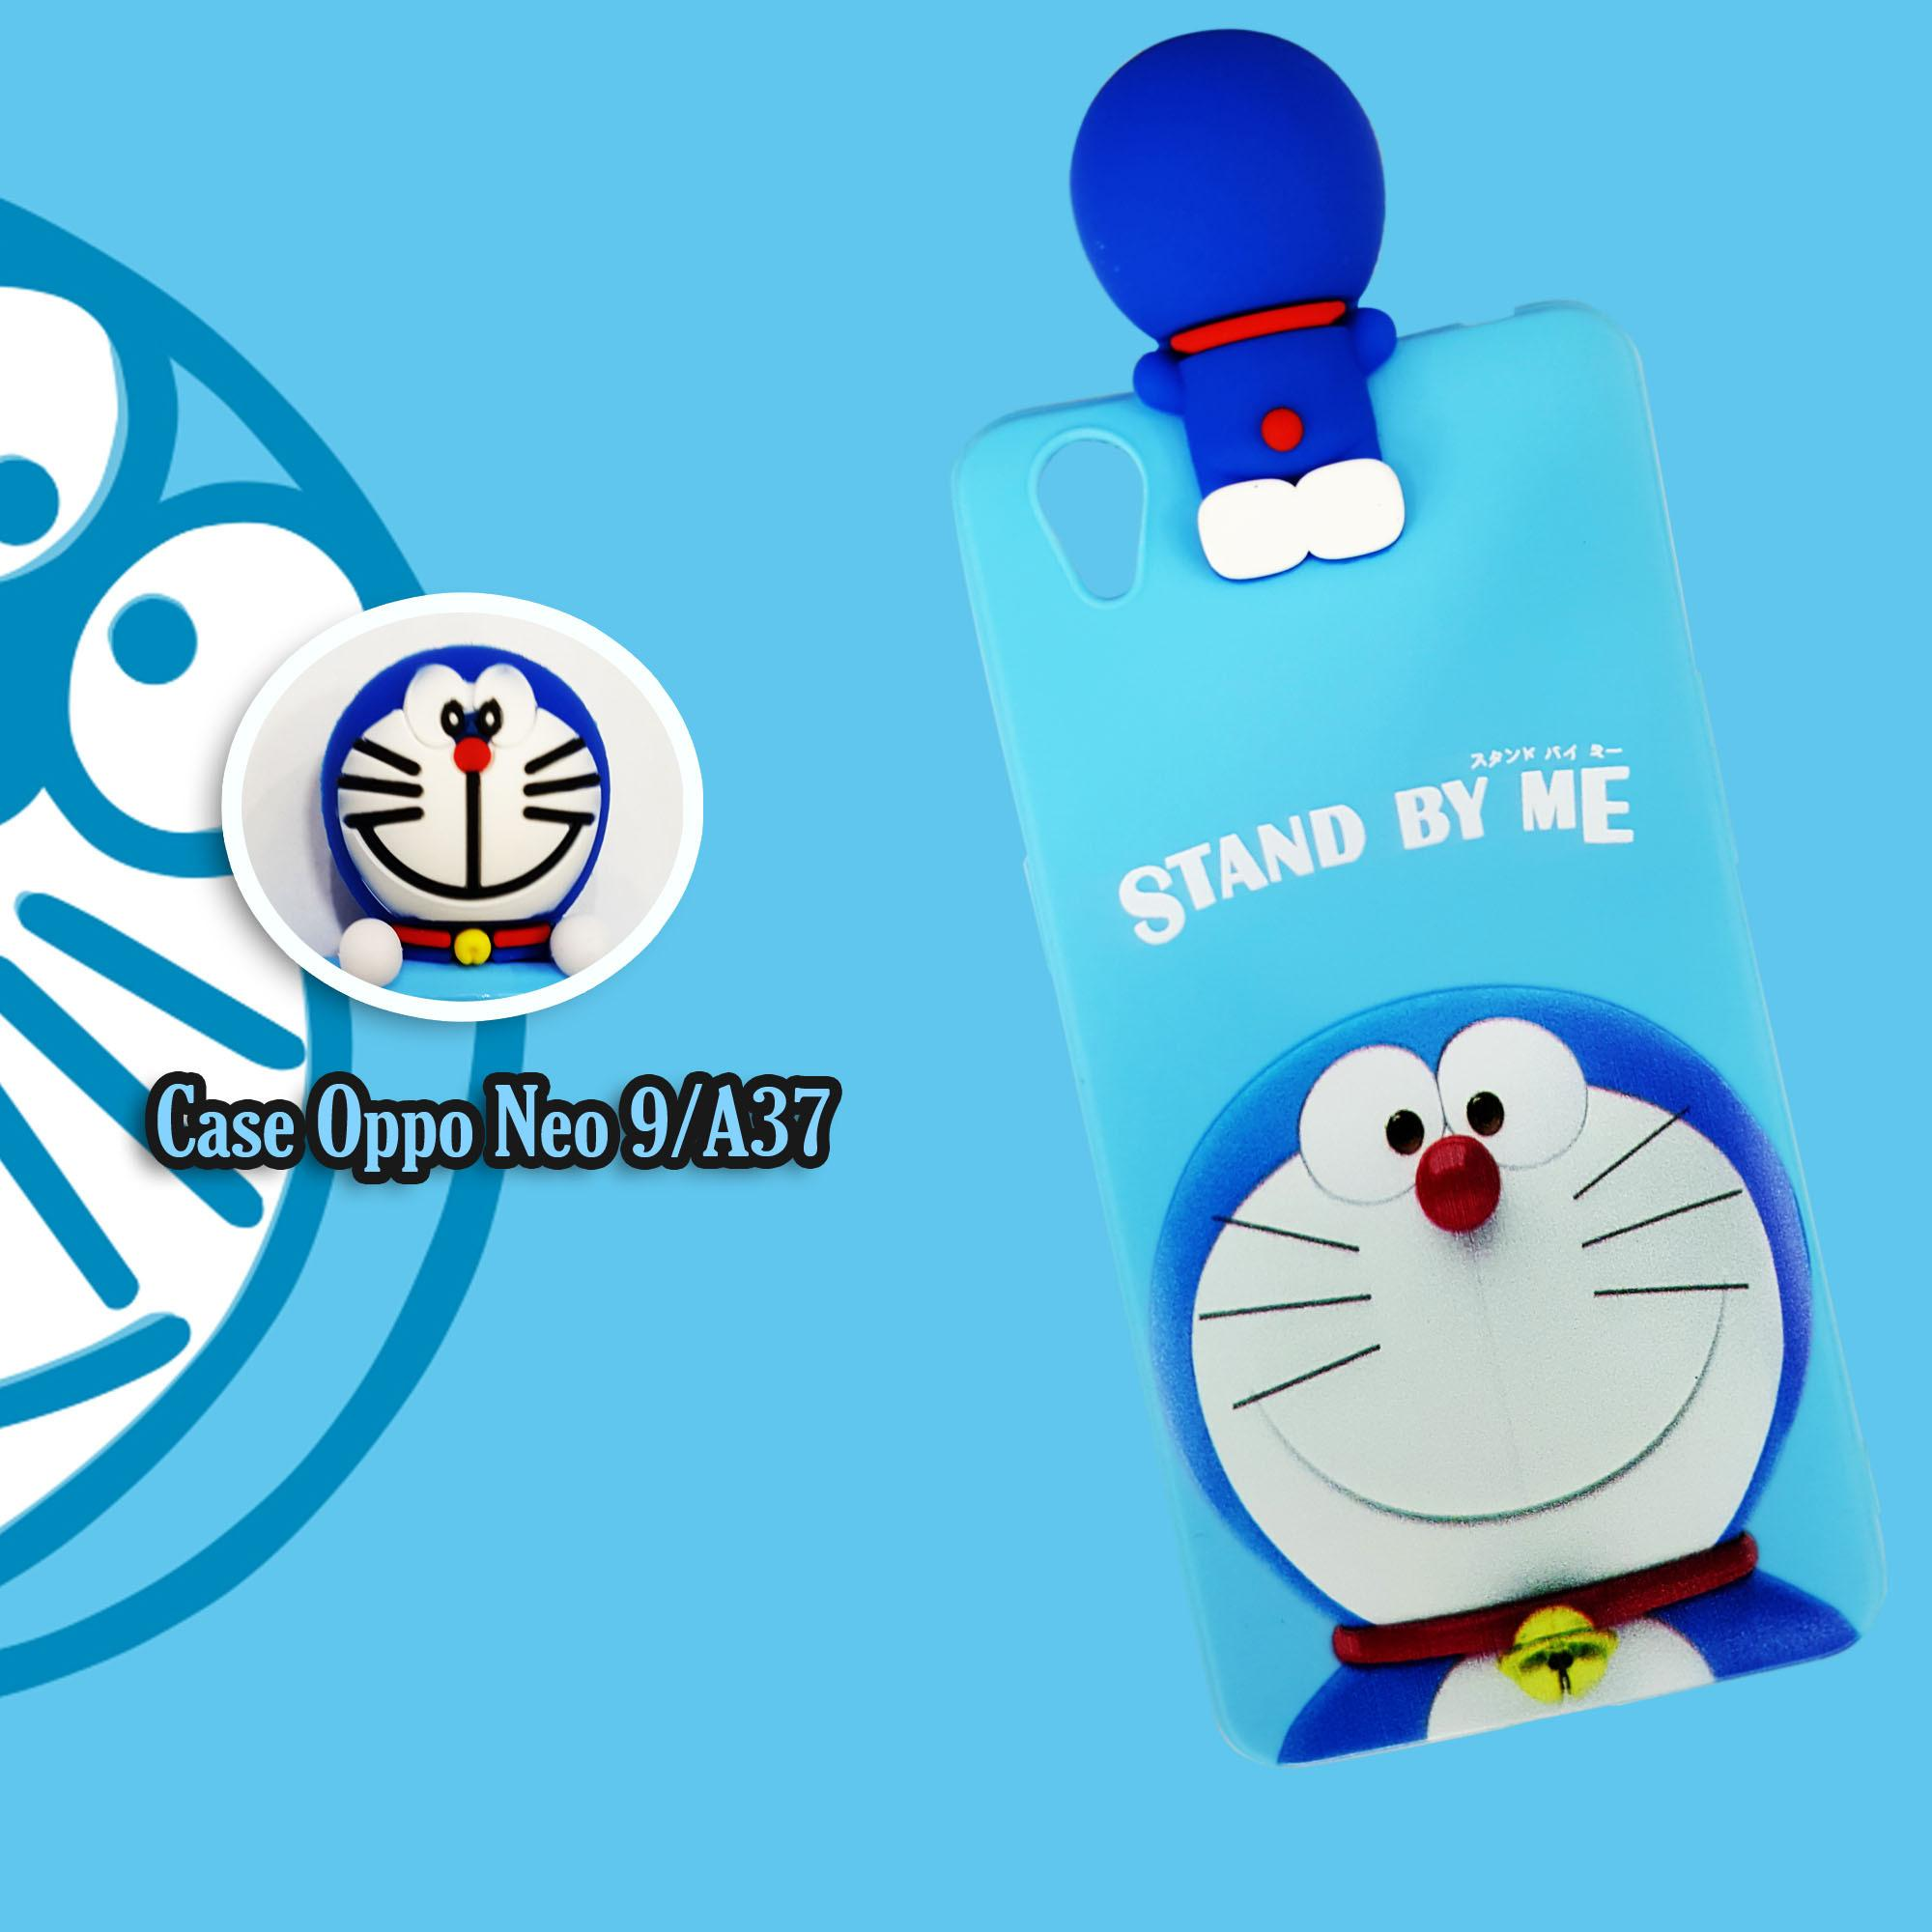 Case Oppo Neo9/A37 Doraemon Stand By Me Manjat